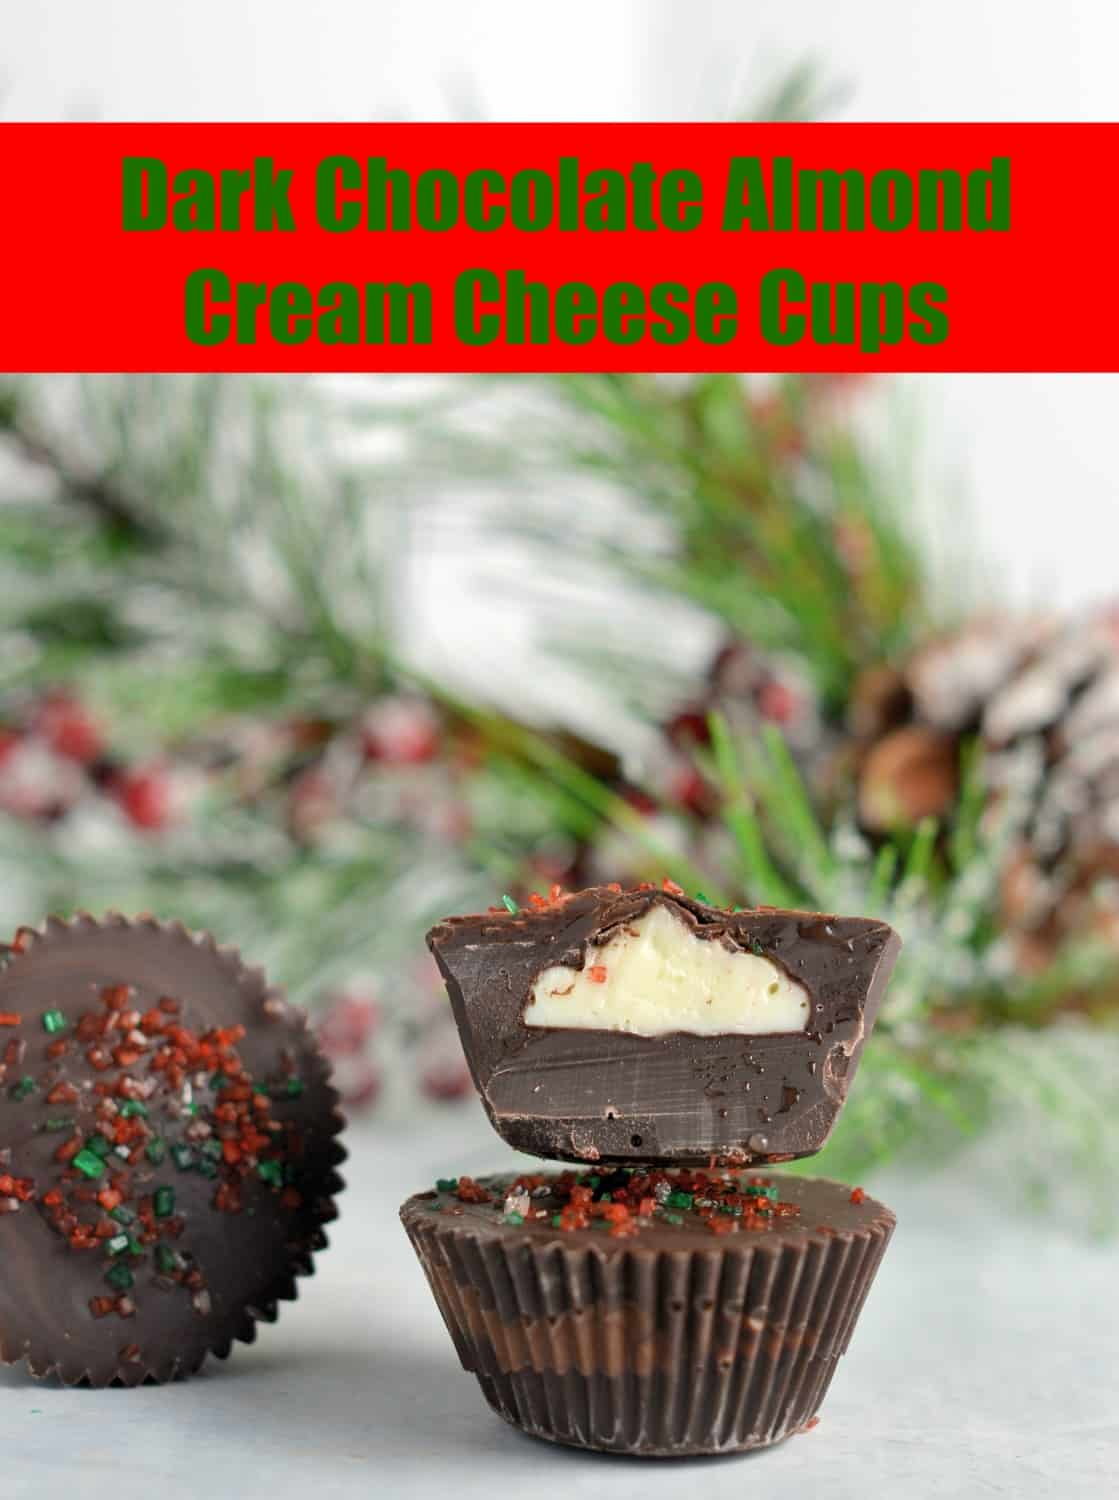 Dark Chocolate Almond Cream Cheese Cups Recipe- No-bake dark chocolate cups stuffed with an almond cream cheese filling. Dark Chocolate Almond Cream Cheese Cups take only 15 minutes to prepare with only 5 ingredients!